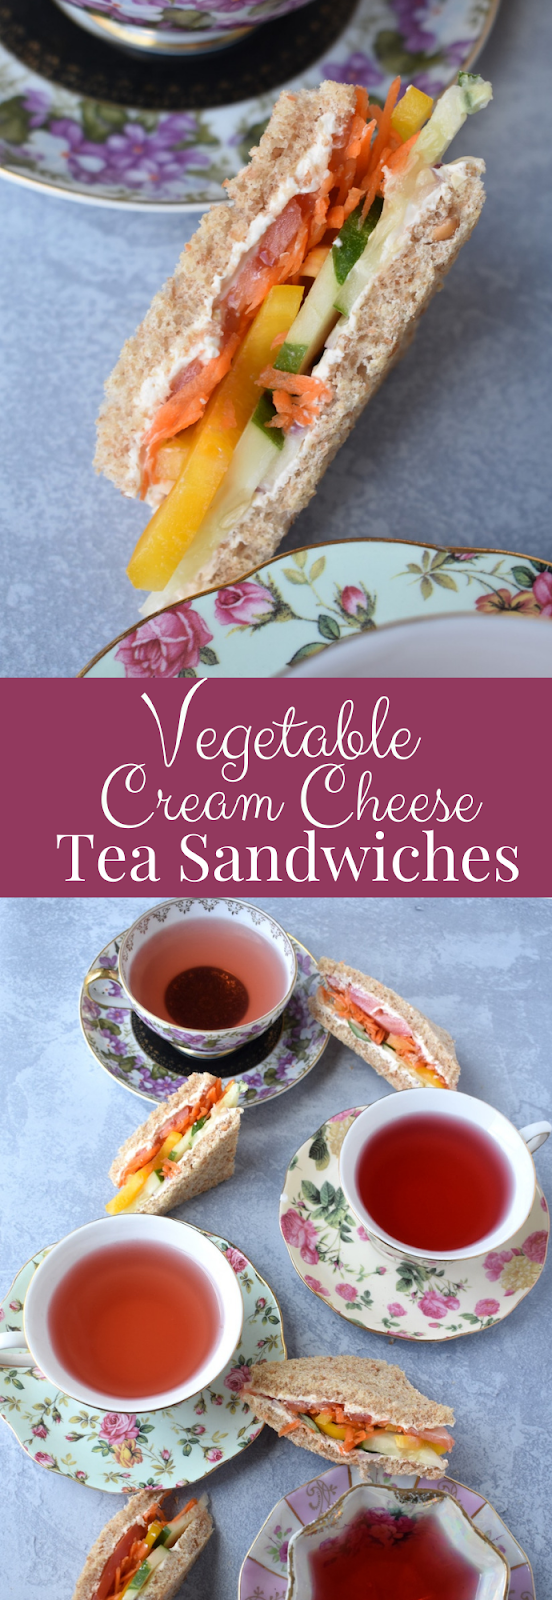 Veggie Cream Cheese Tea Sandwiches